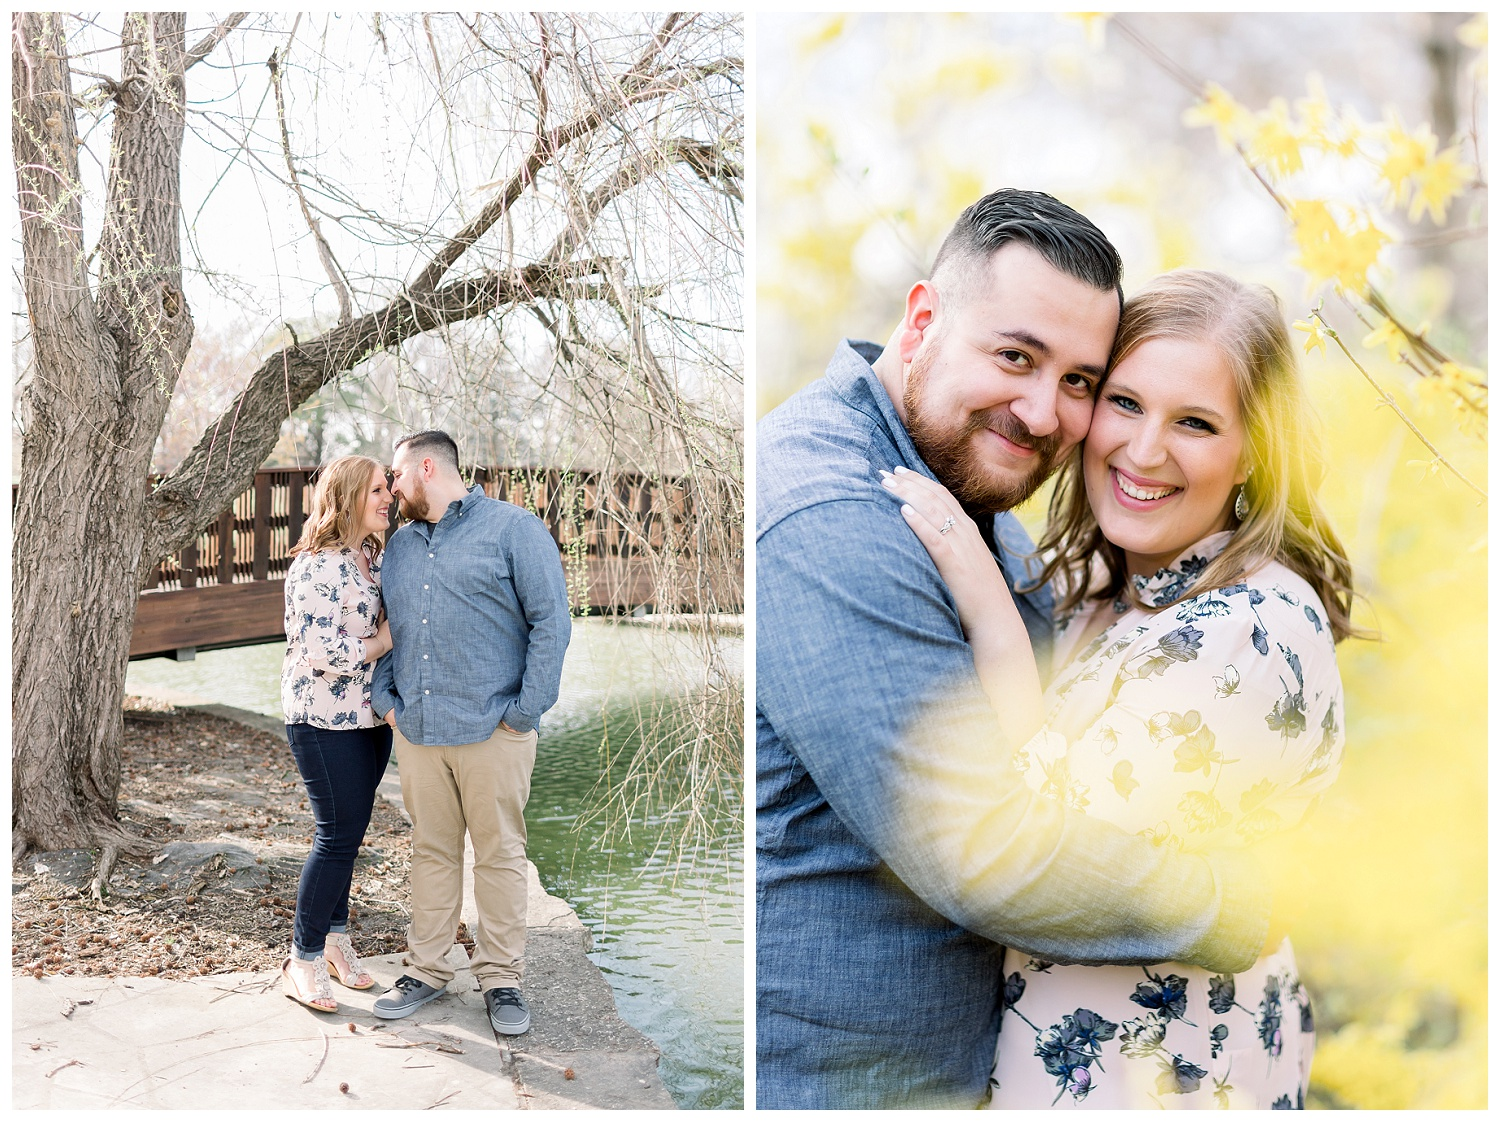 Engagement-Photos-at-Loose-Park-Springtime-KC-Elizabeth-Ladean-Photography_A+D-0407--_6872.jpg